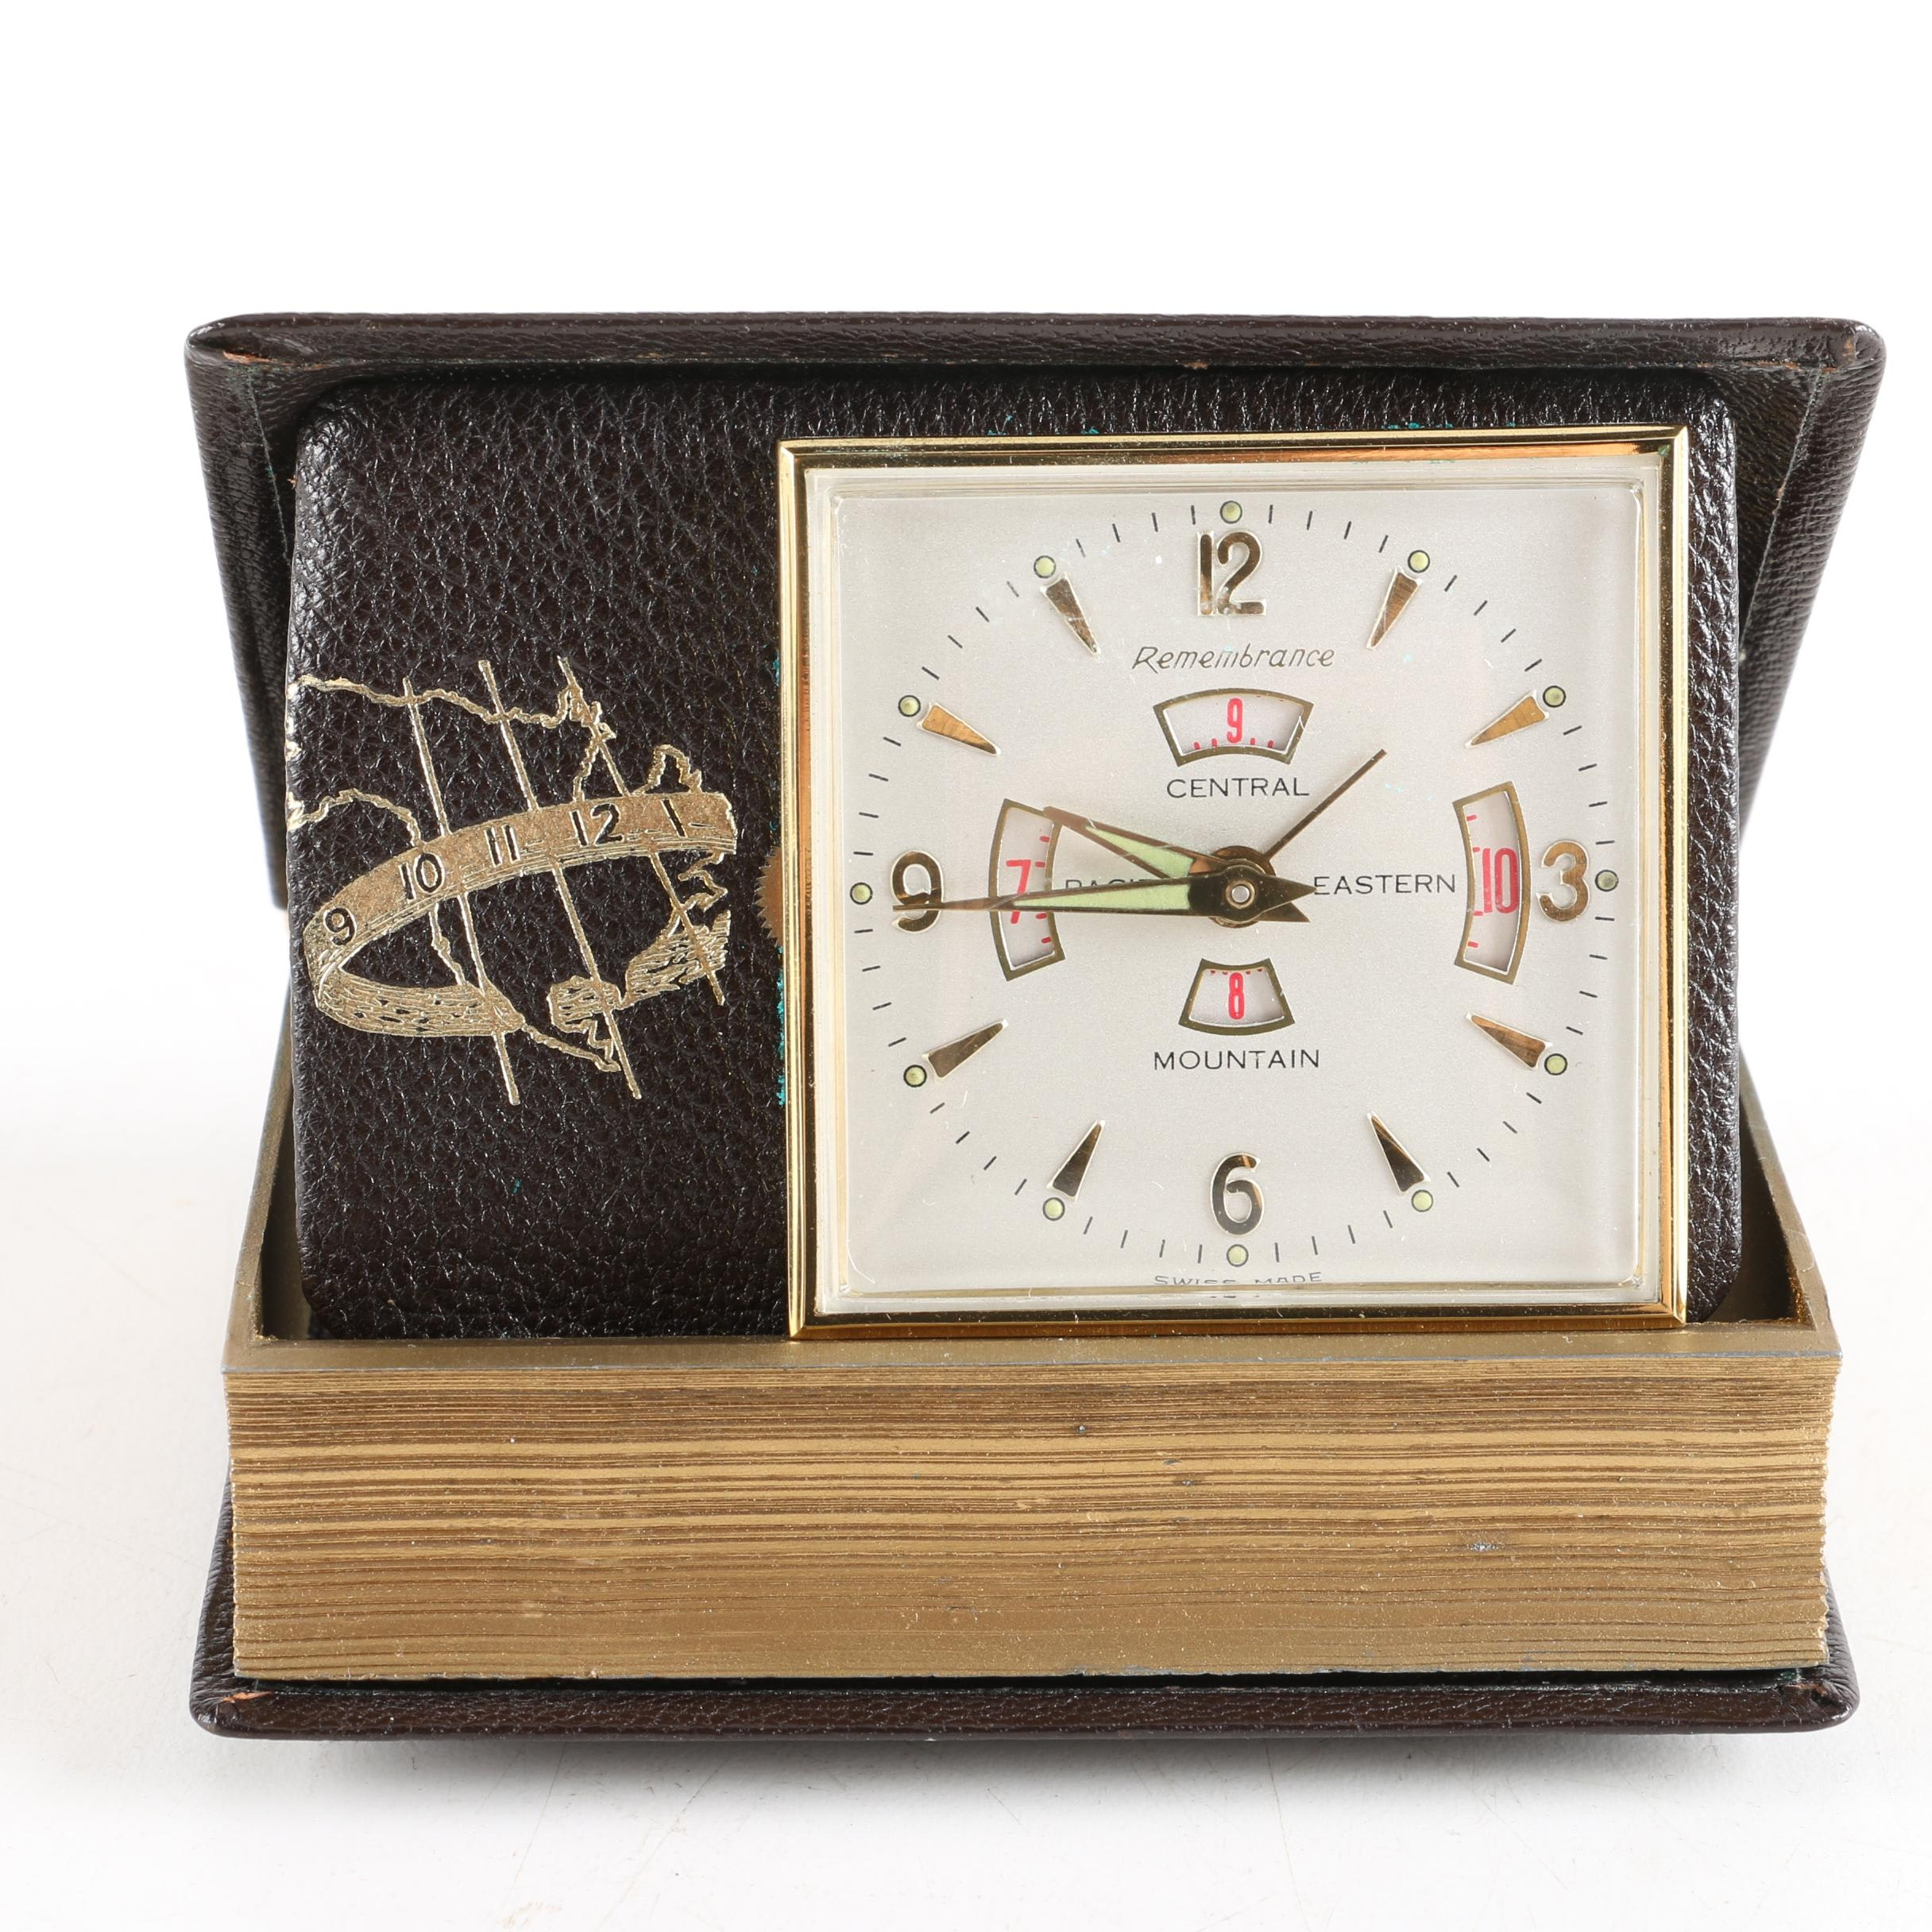 "Swiss-Made Remembrance ""The Four Zone"" Book-Style Travel Clock With Time Zone Display"